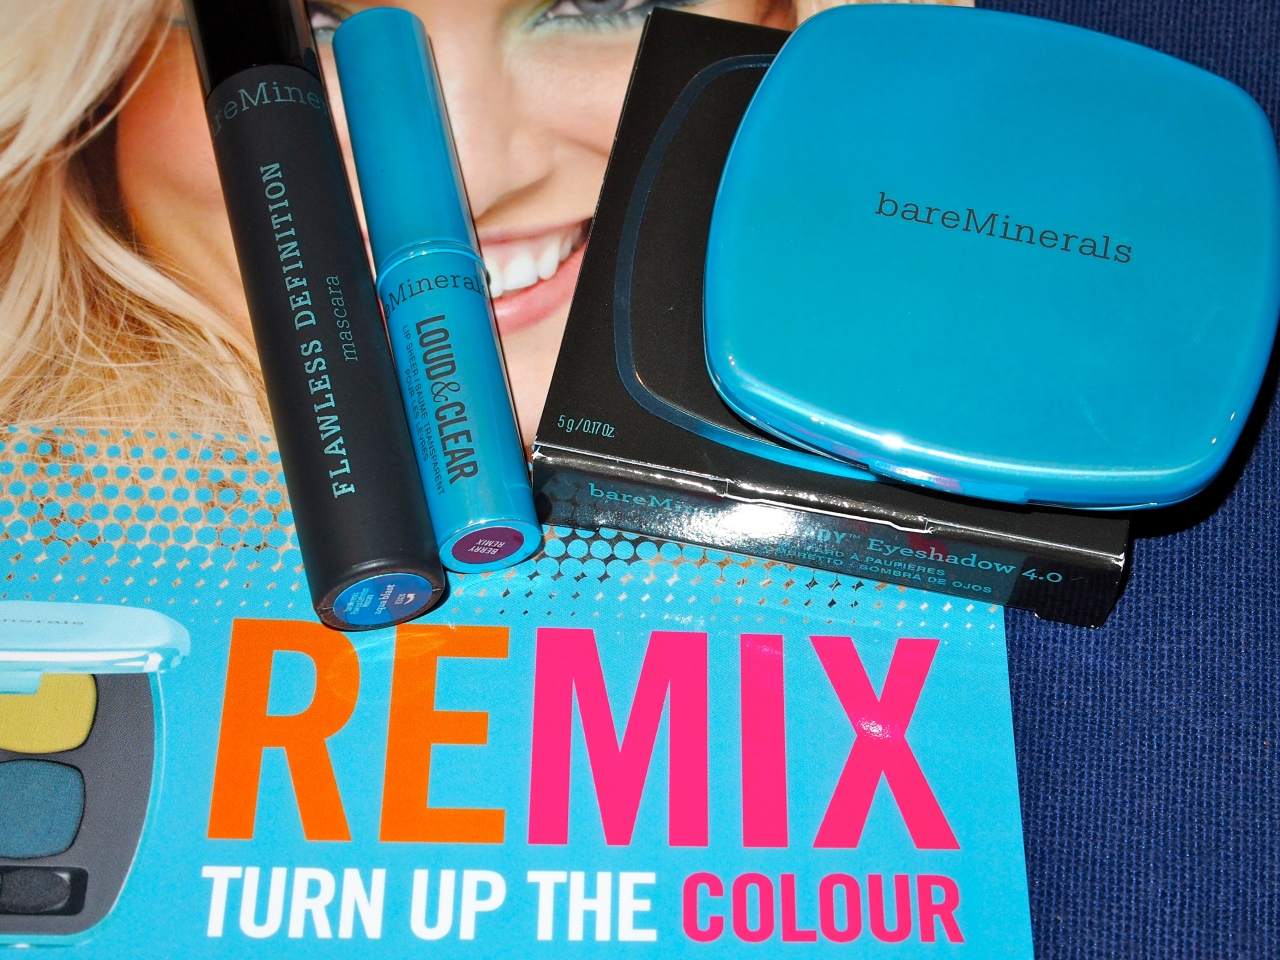 * c/o bare minerals remix collection: flawless definition mascara in aqua blast, loud & clear lip sheer in berry remix, ready eyeshadow in the next big thing, ready blush *